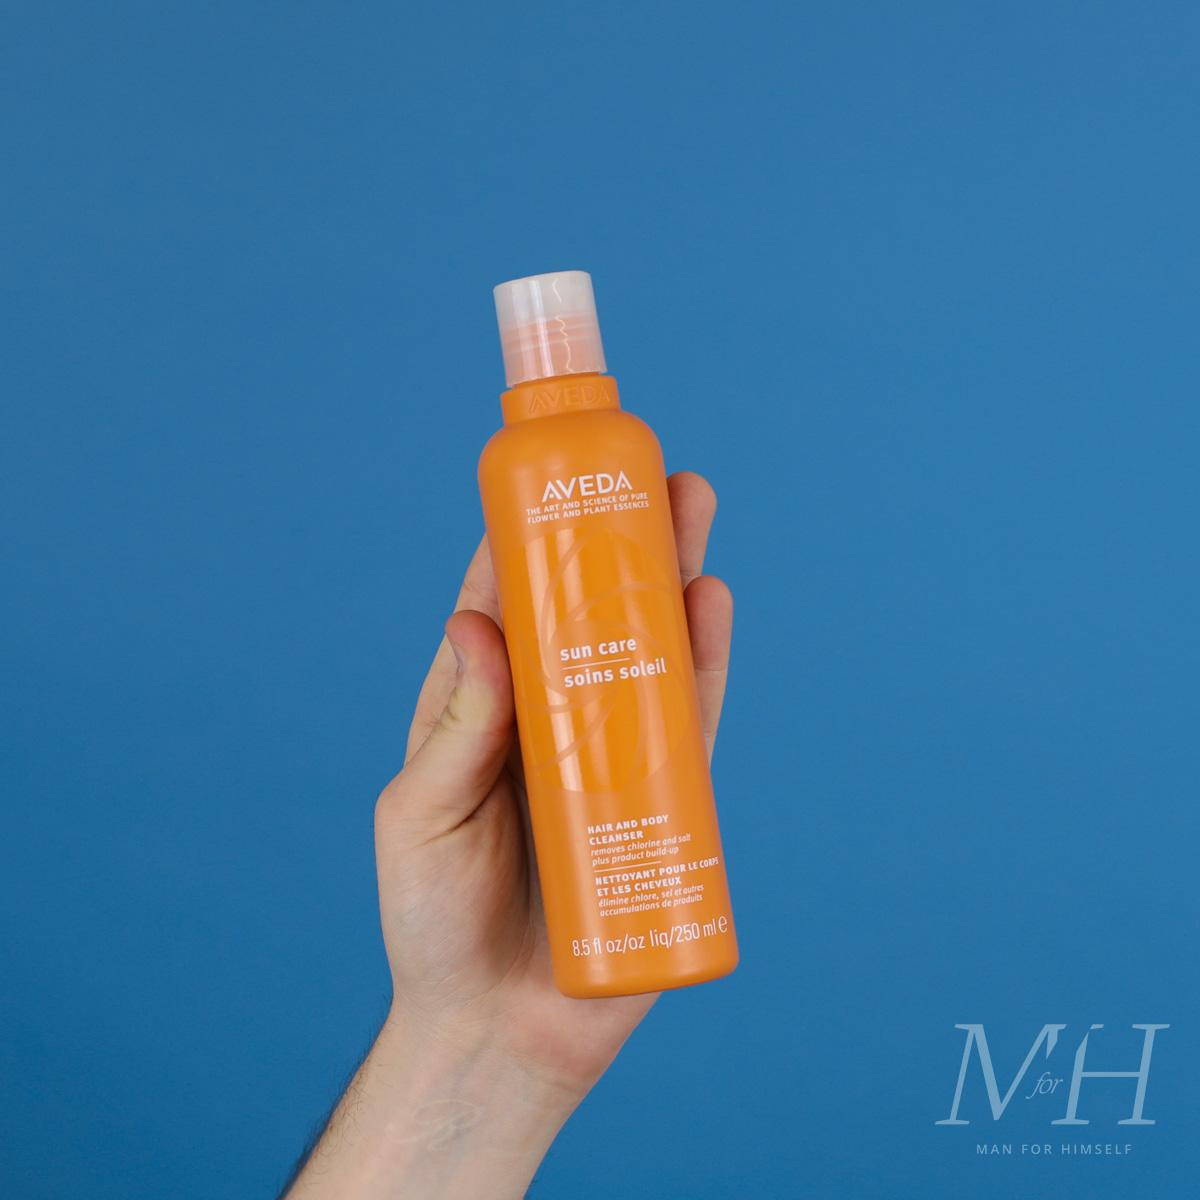 aveda-sun-care-hair-and-body-cleanser-product-review-man-for-himself